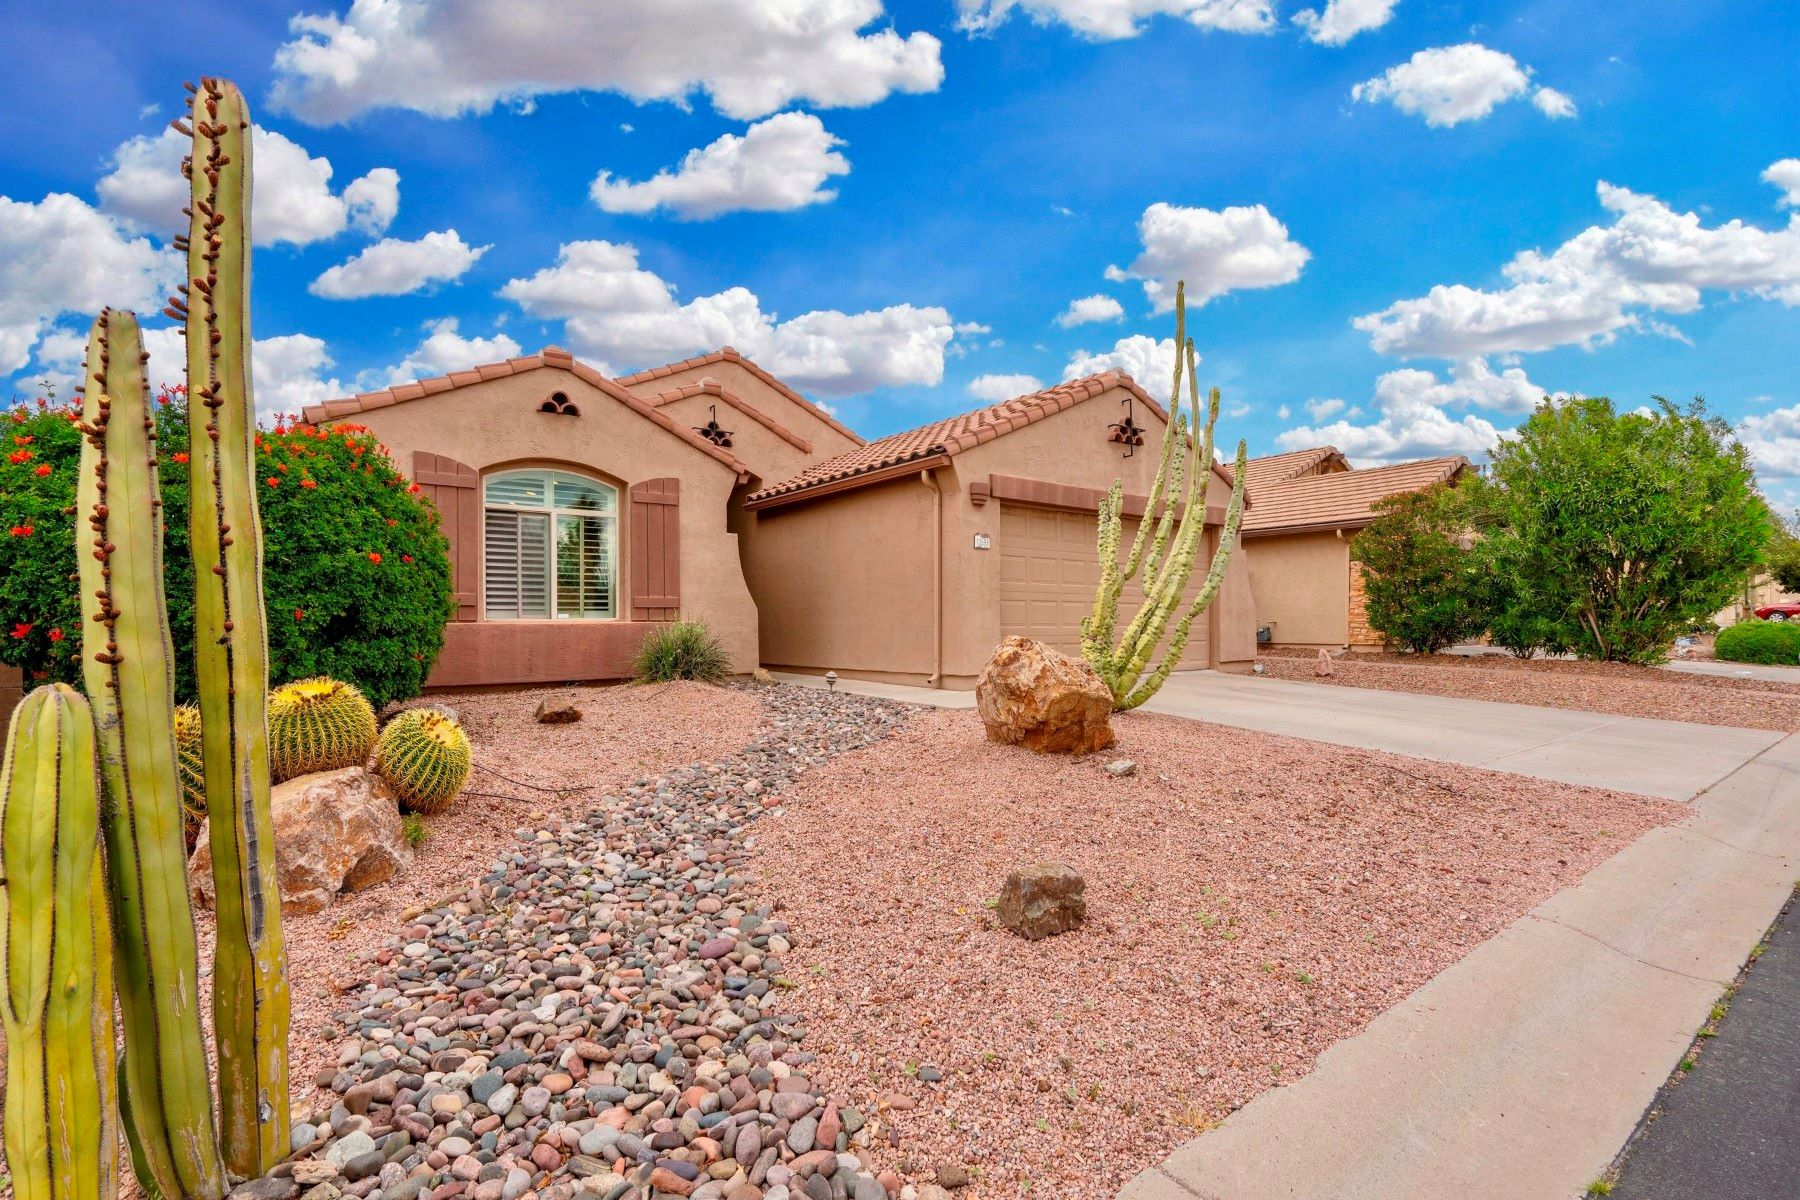 Single Family Homes for Active at Peralta Trails 10588 E DUTCHMANS TRL Gold Canyon, Arizona 85118 United States